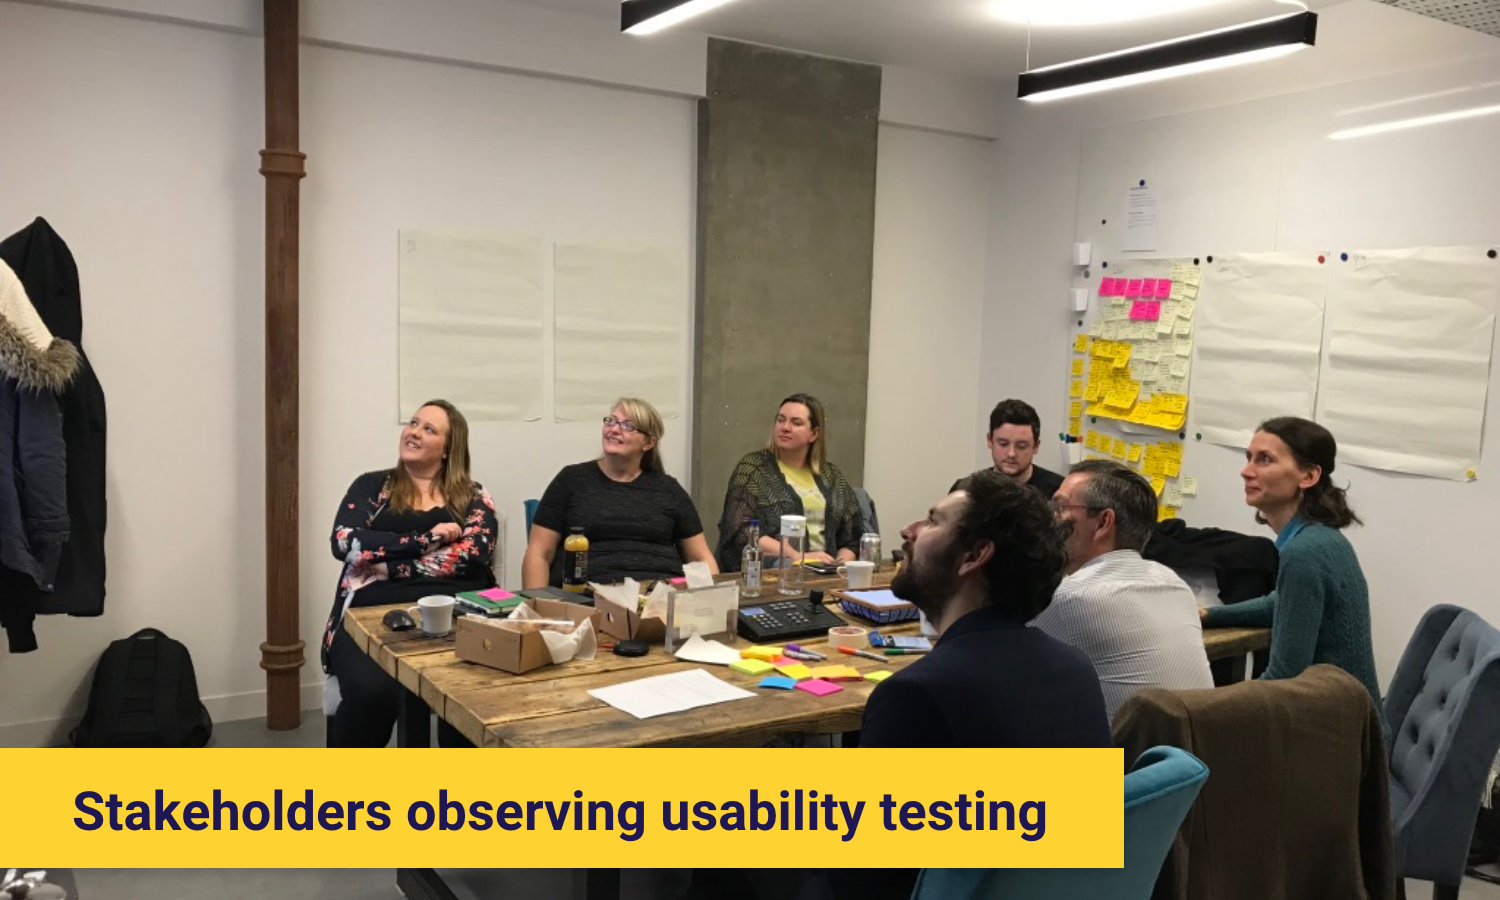 User testing, with stakeholder engagements